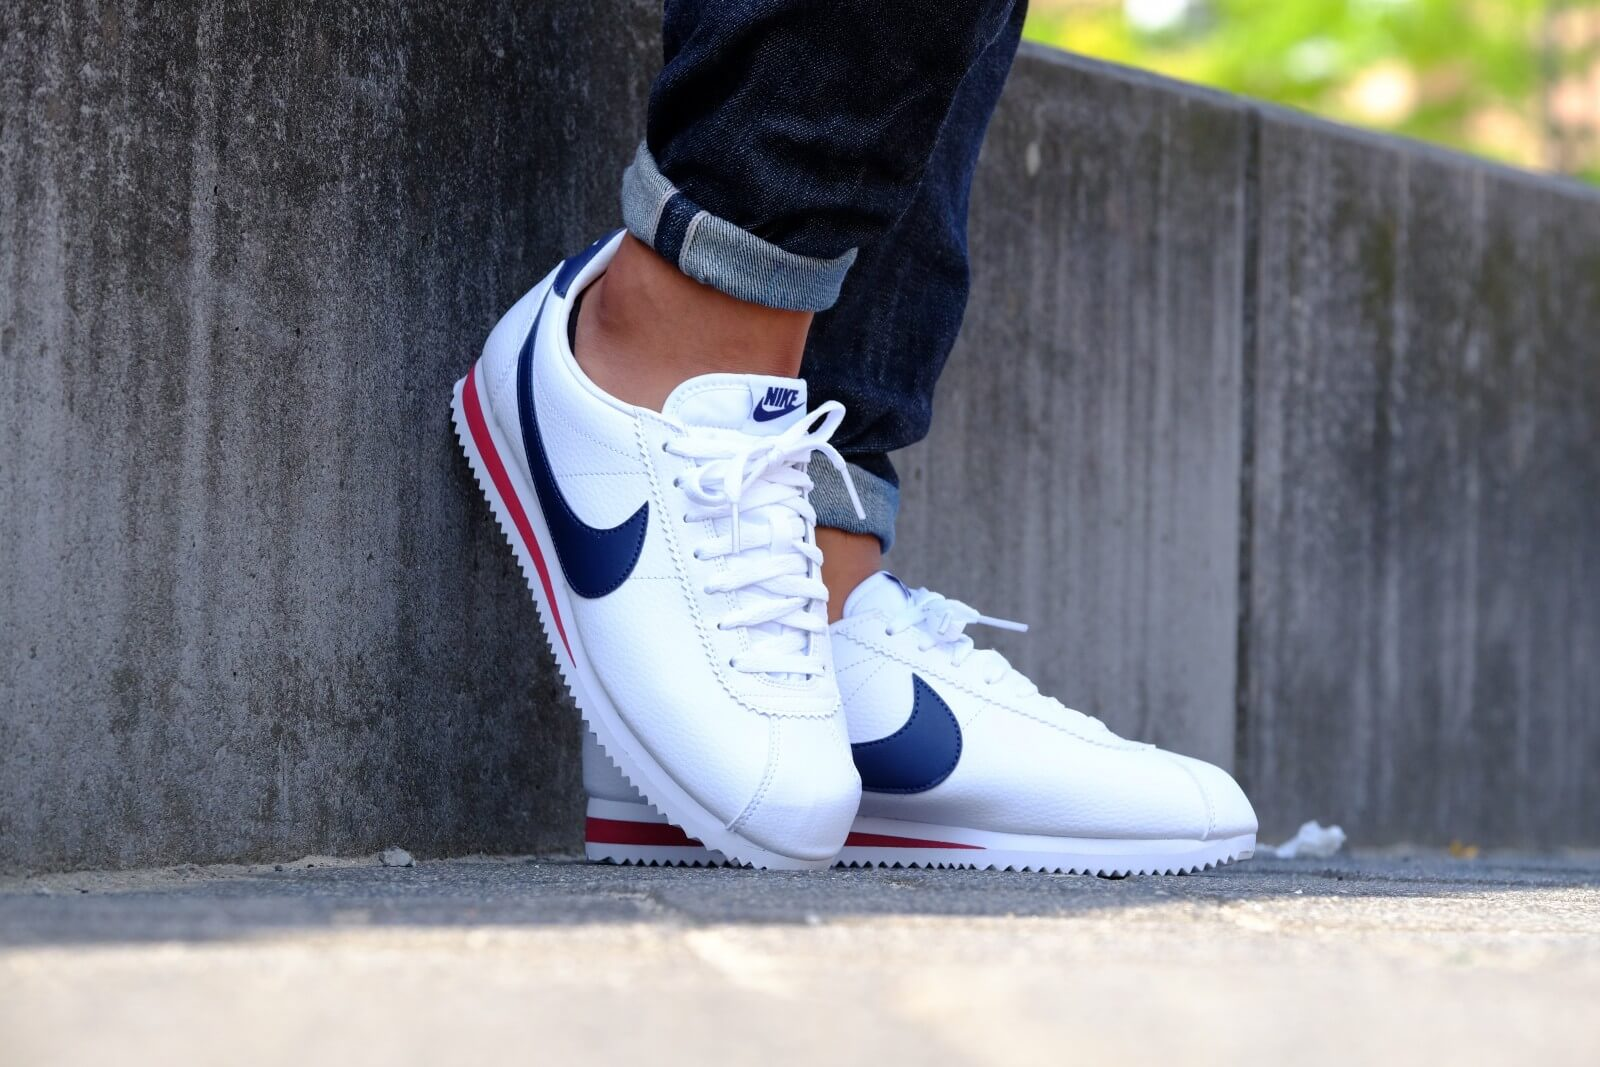 huge selection of effca ade3b ... Nike Classic Cortez Leather White Midnight Navy-Gym Red - 74 ...